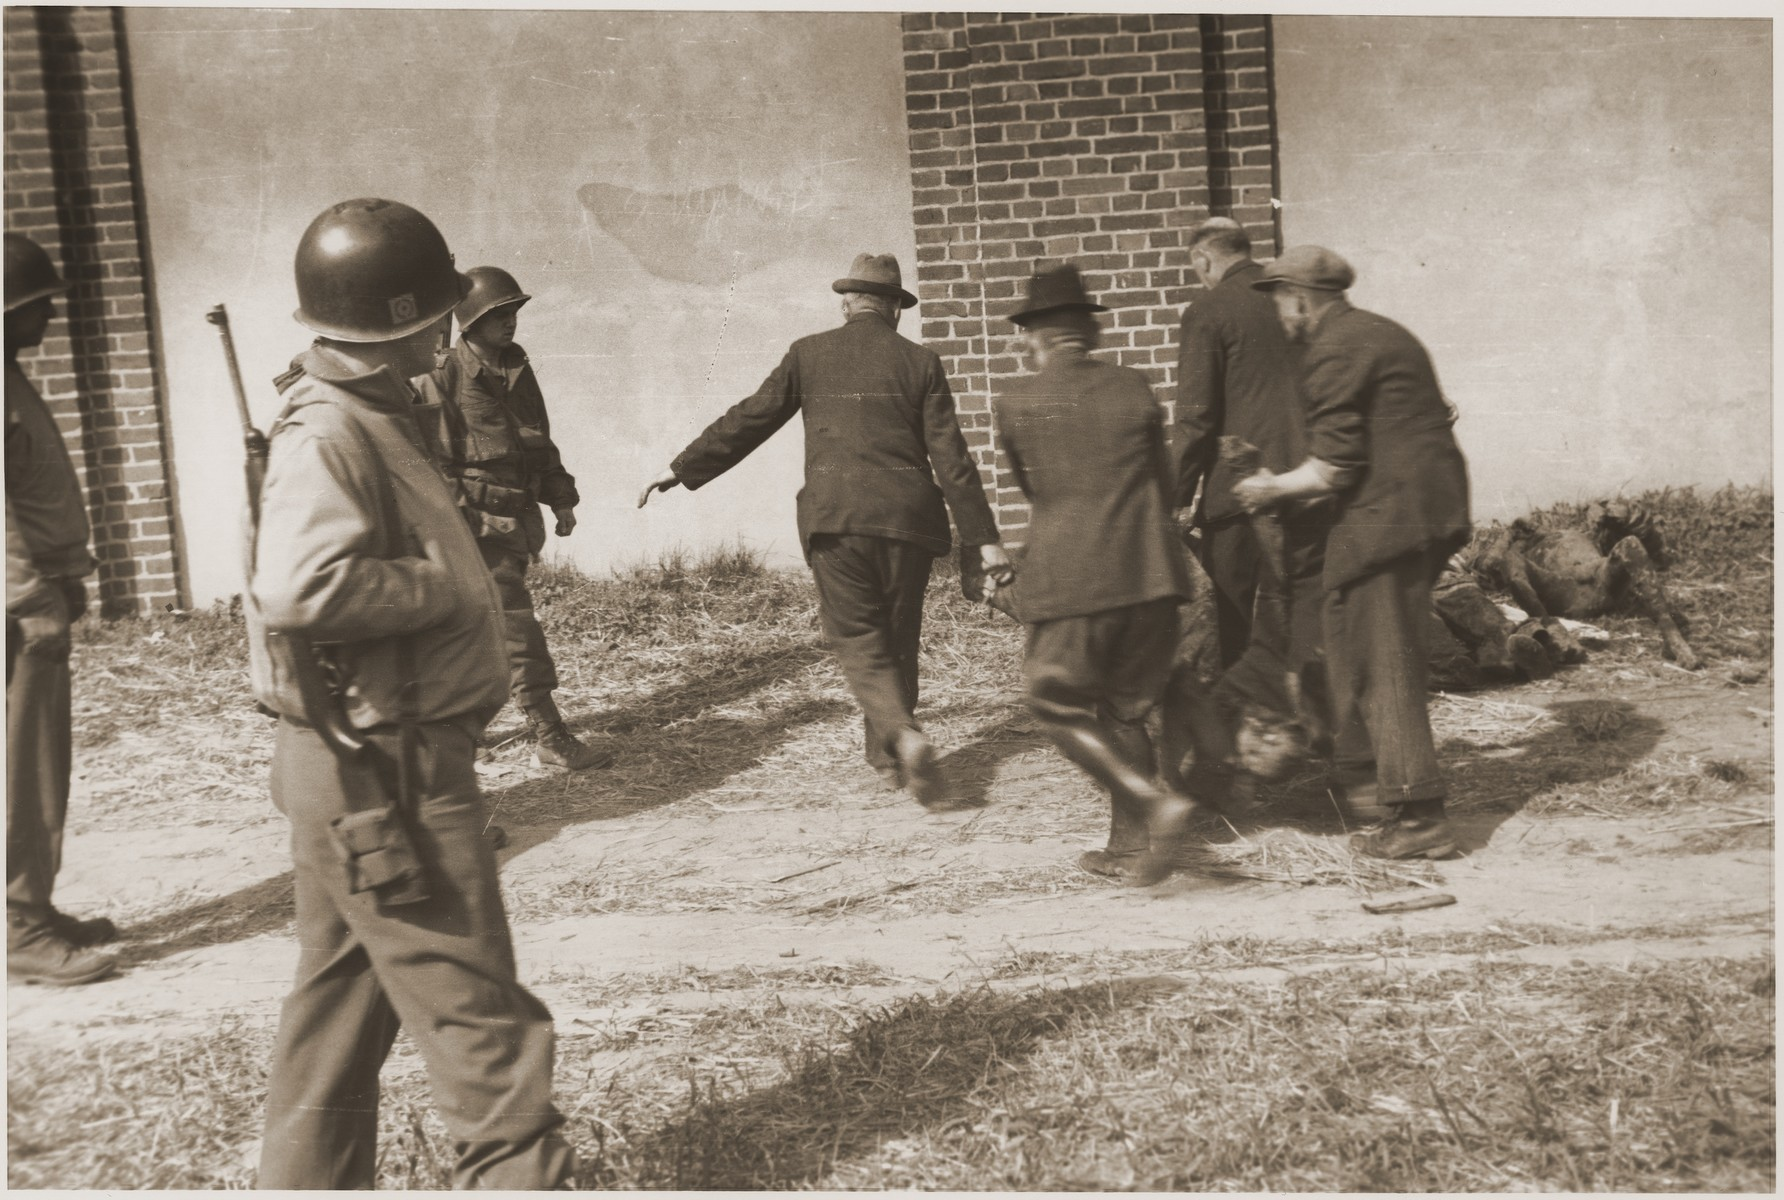 Under the supervision of the Ninth U.S. Army, German civilians are forced to remove the charred corpses of prisoners from a barn outside of Gardelegen for burial in mass graves.